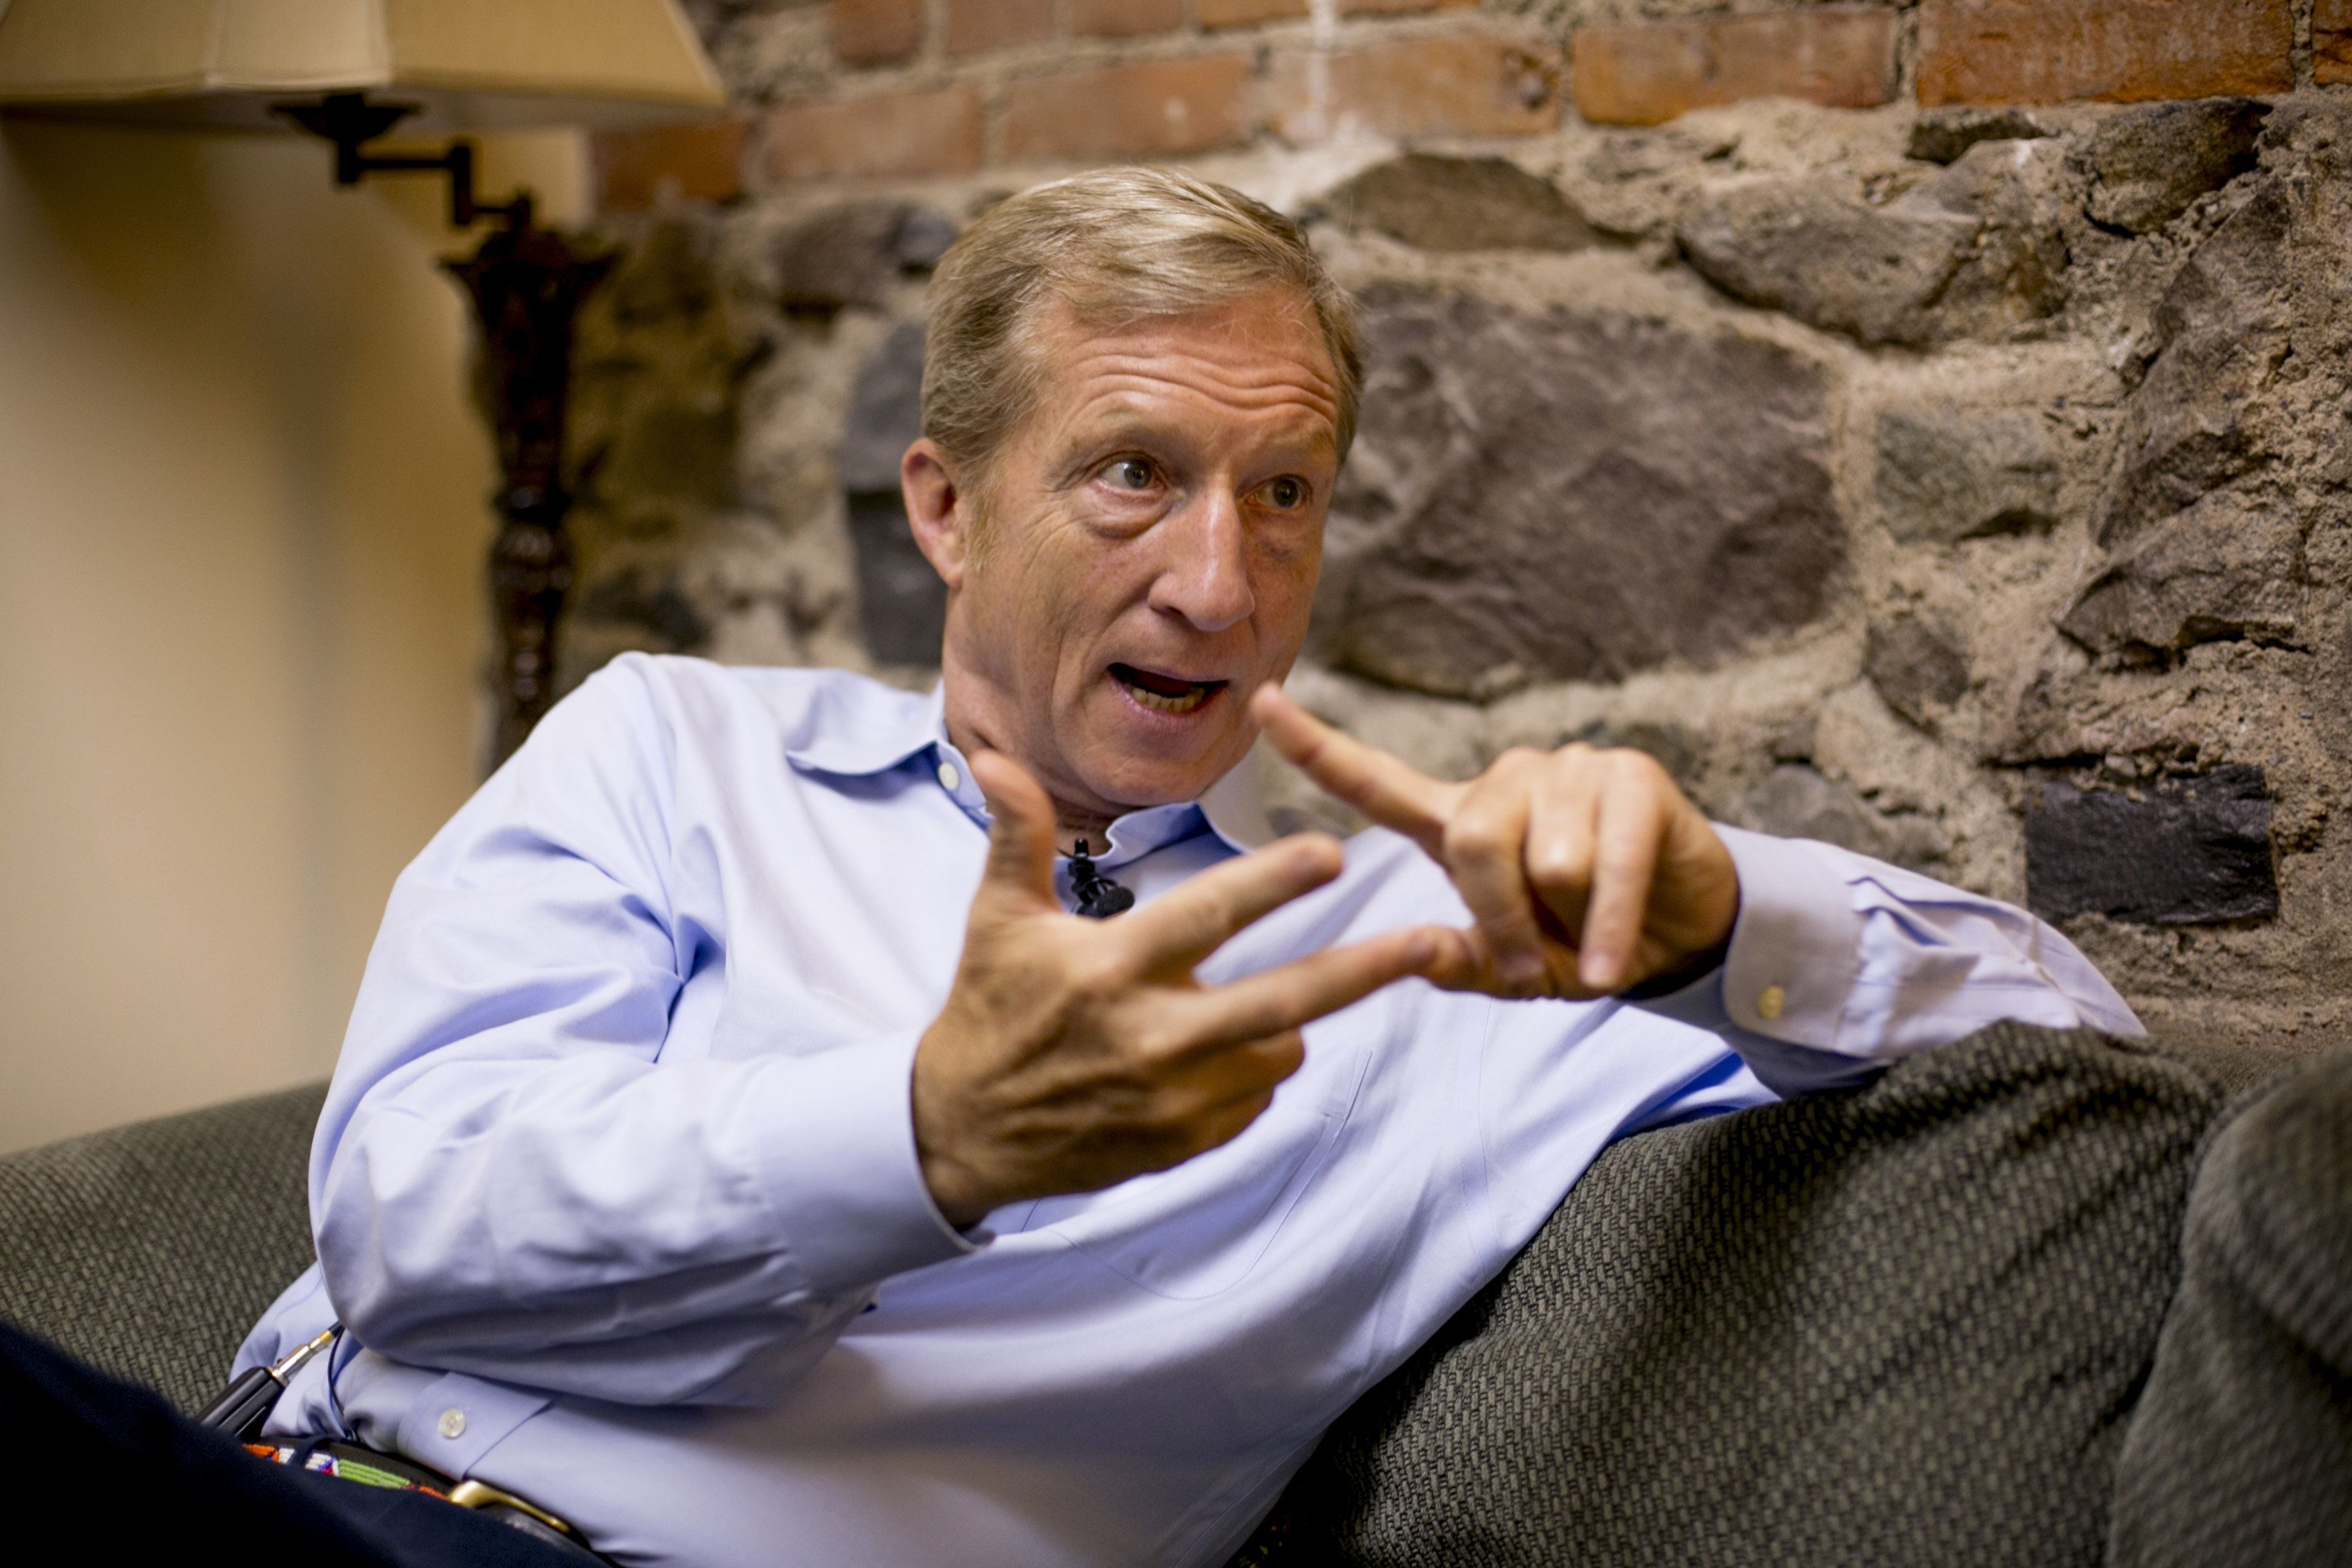 Billionaire Tom Steyer is one of the donors involved in the Democracy Alliance. The group is holding a postelection briefing